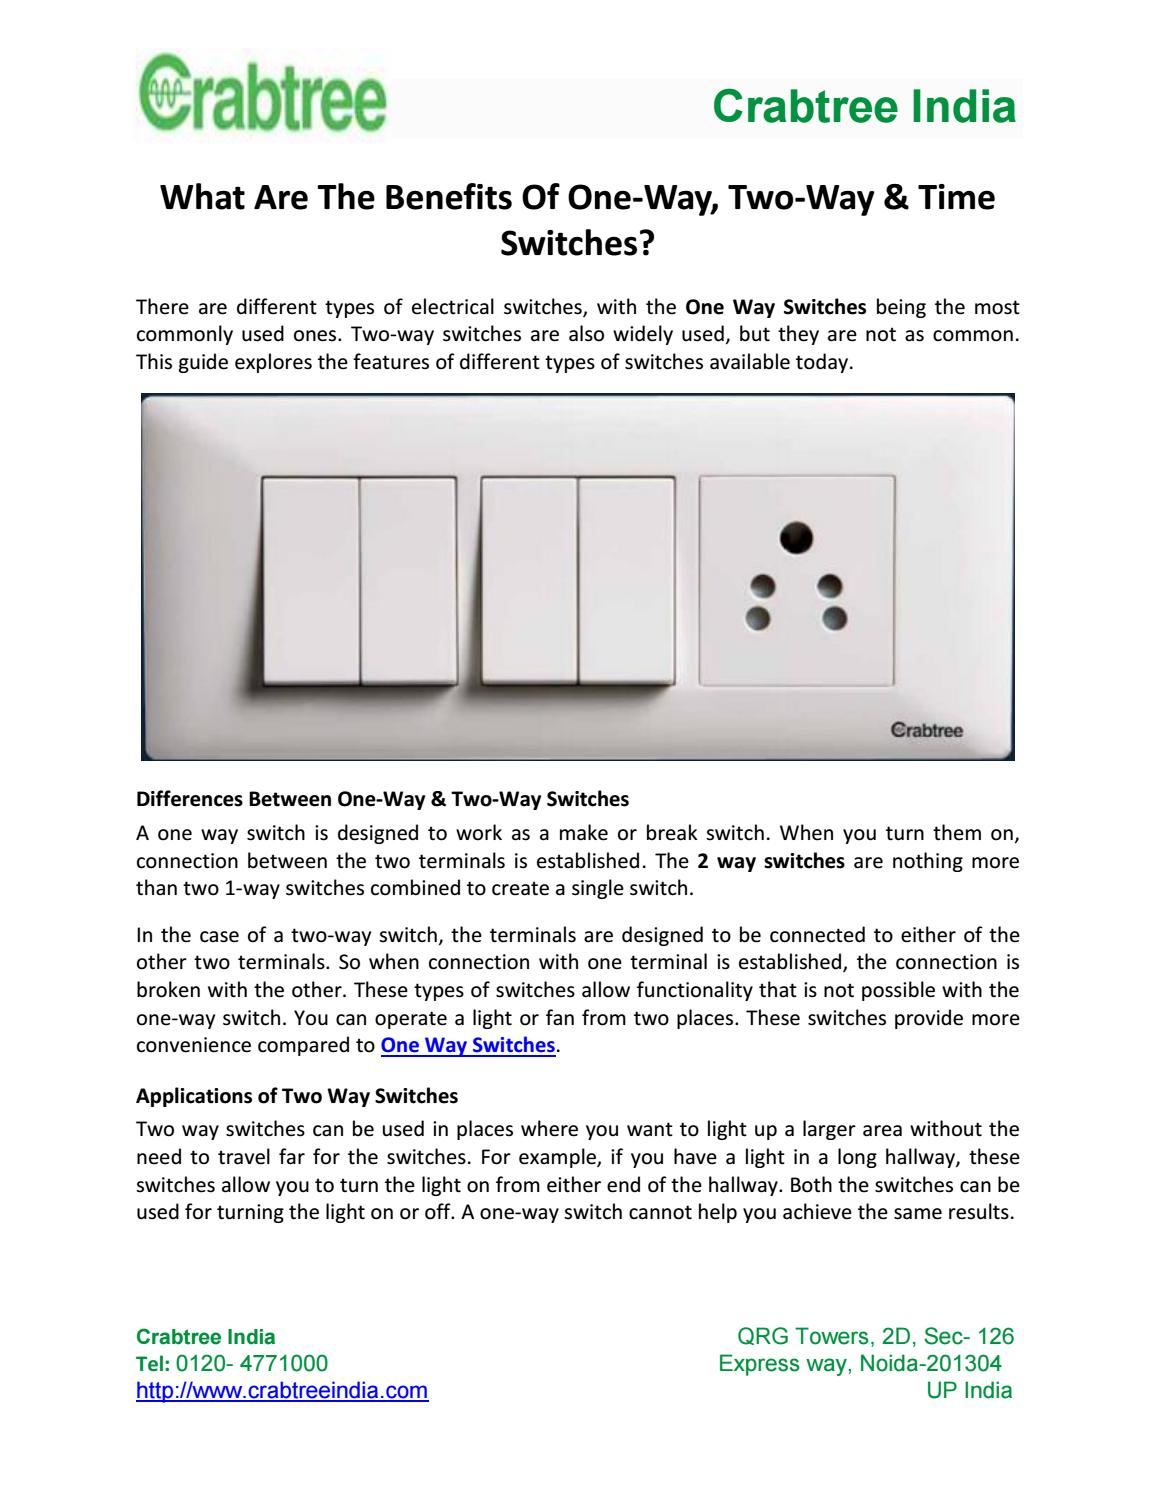 What Are The Benefits Of One Way Two Time Switches By Nancy 2 Switch Electrical Pache Issuu